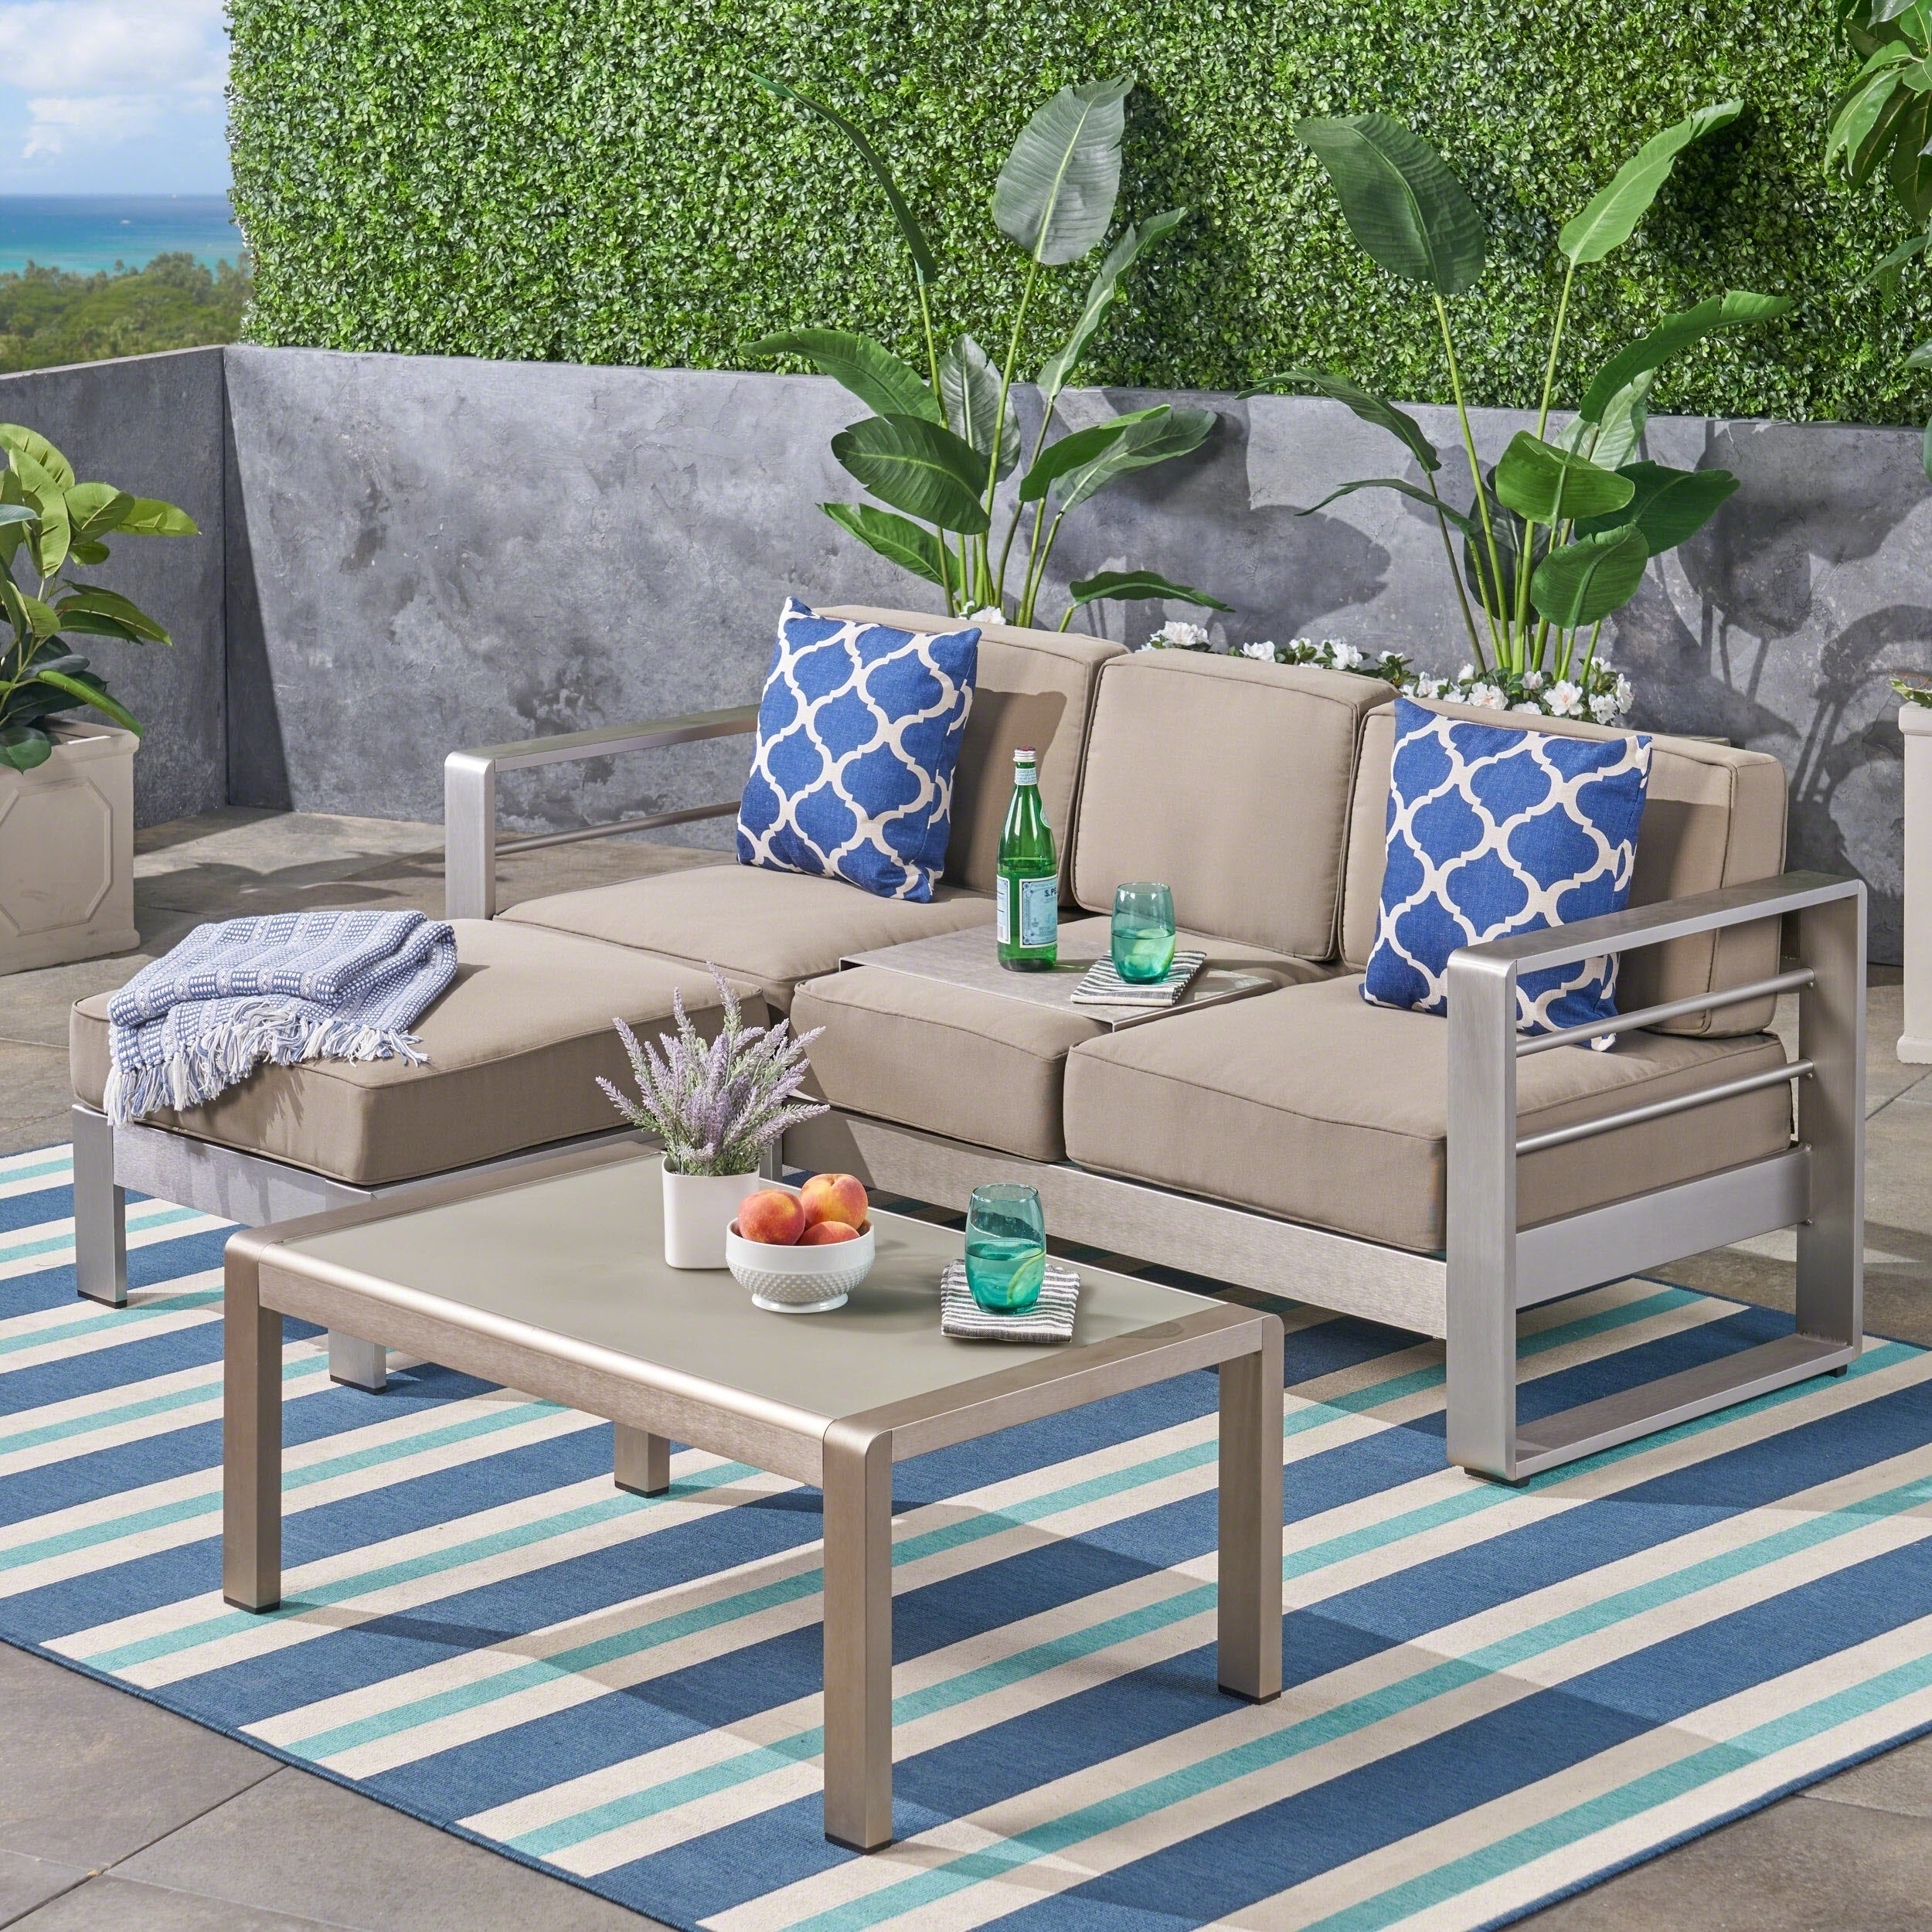 Pleasing Cape Coral Outdoor 3 Seater Aluminum Sofa Set With Coffee Table And Ottman By Christopher Knight Home Inzonedesignstudio Interior Chair Design Inzonedesignstudiocom